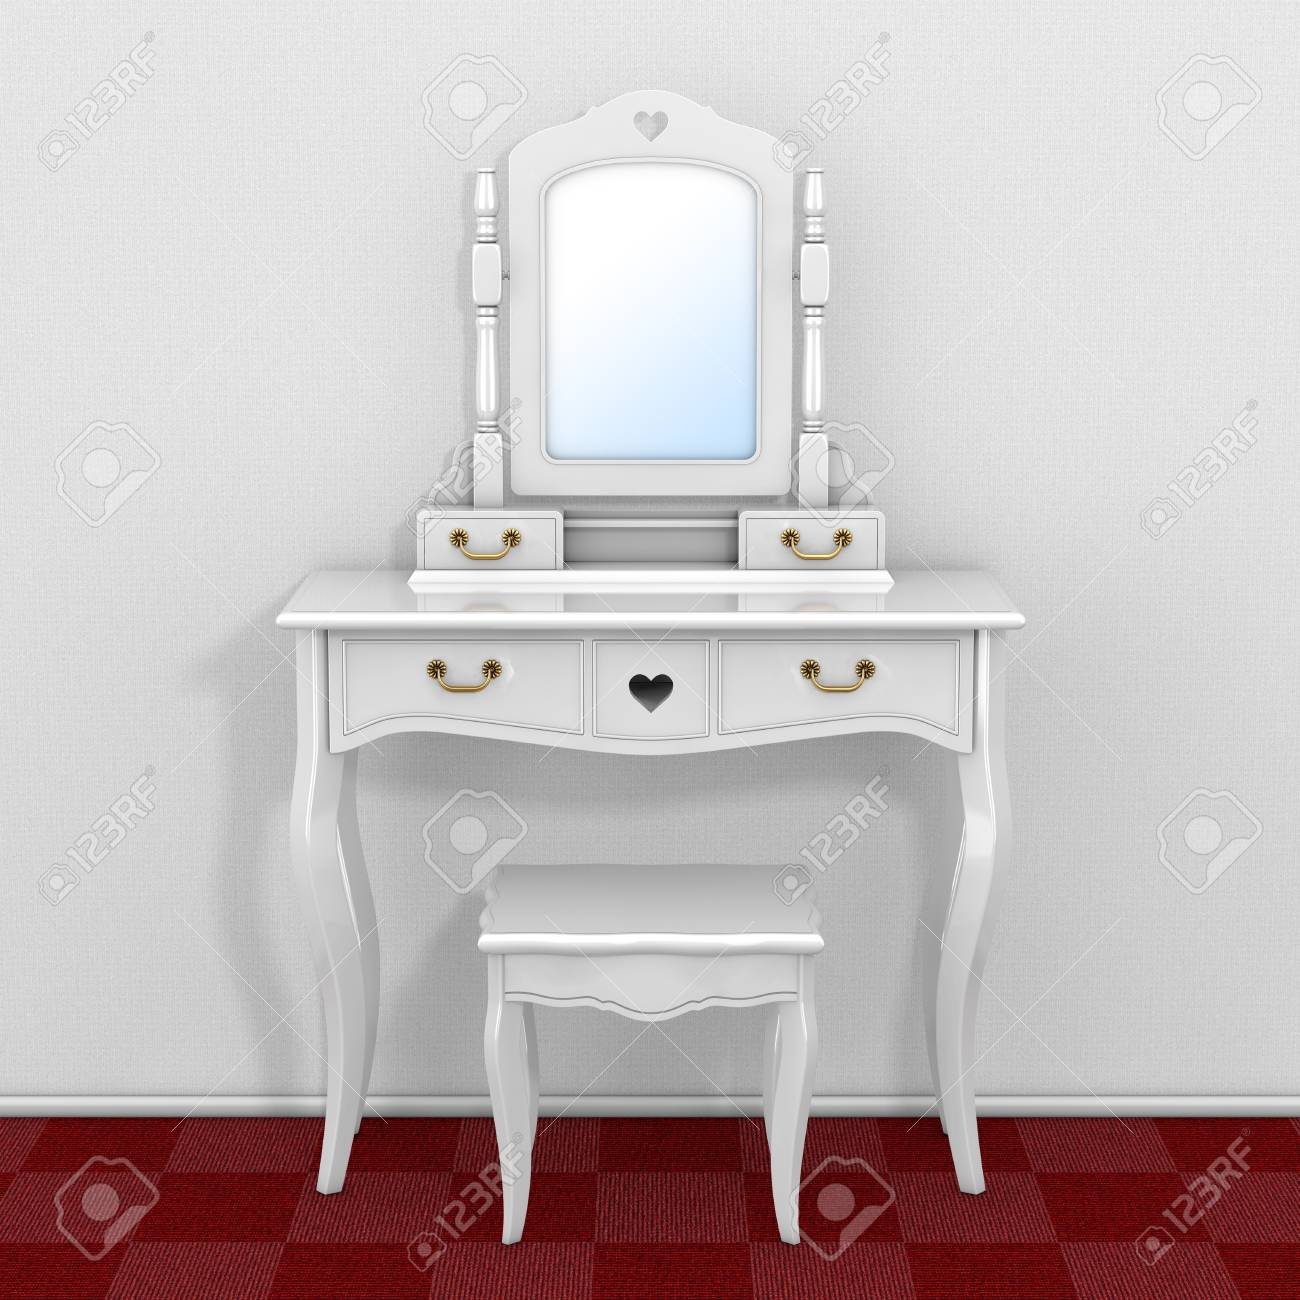 Antique Bedroom Vanity Table With Stool And Mirror In Room With Red Carpet  Floor And White